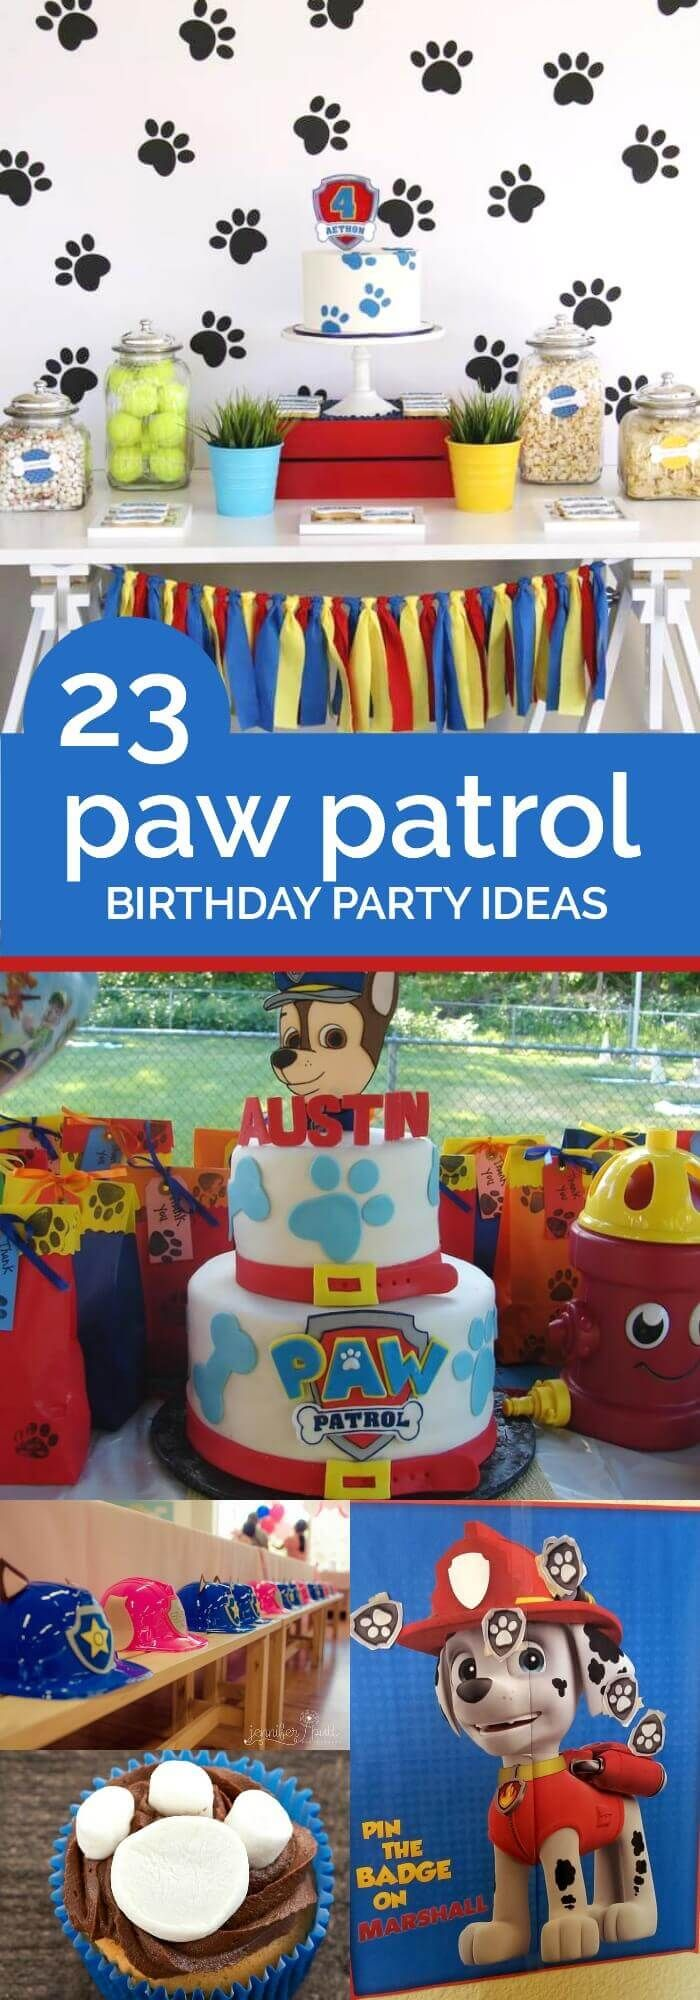 abbastanza 23 Paw Patrol Birthday Party Ideas | All Kinds of Party Ideas  YB64